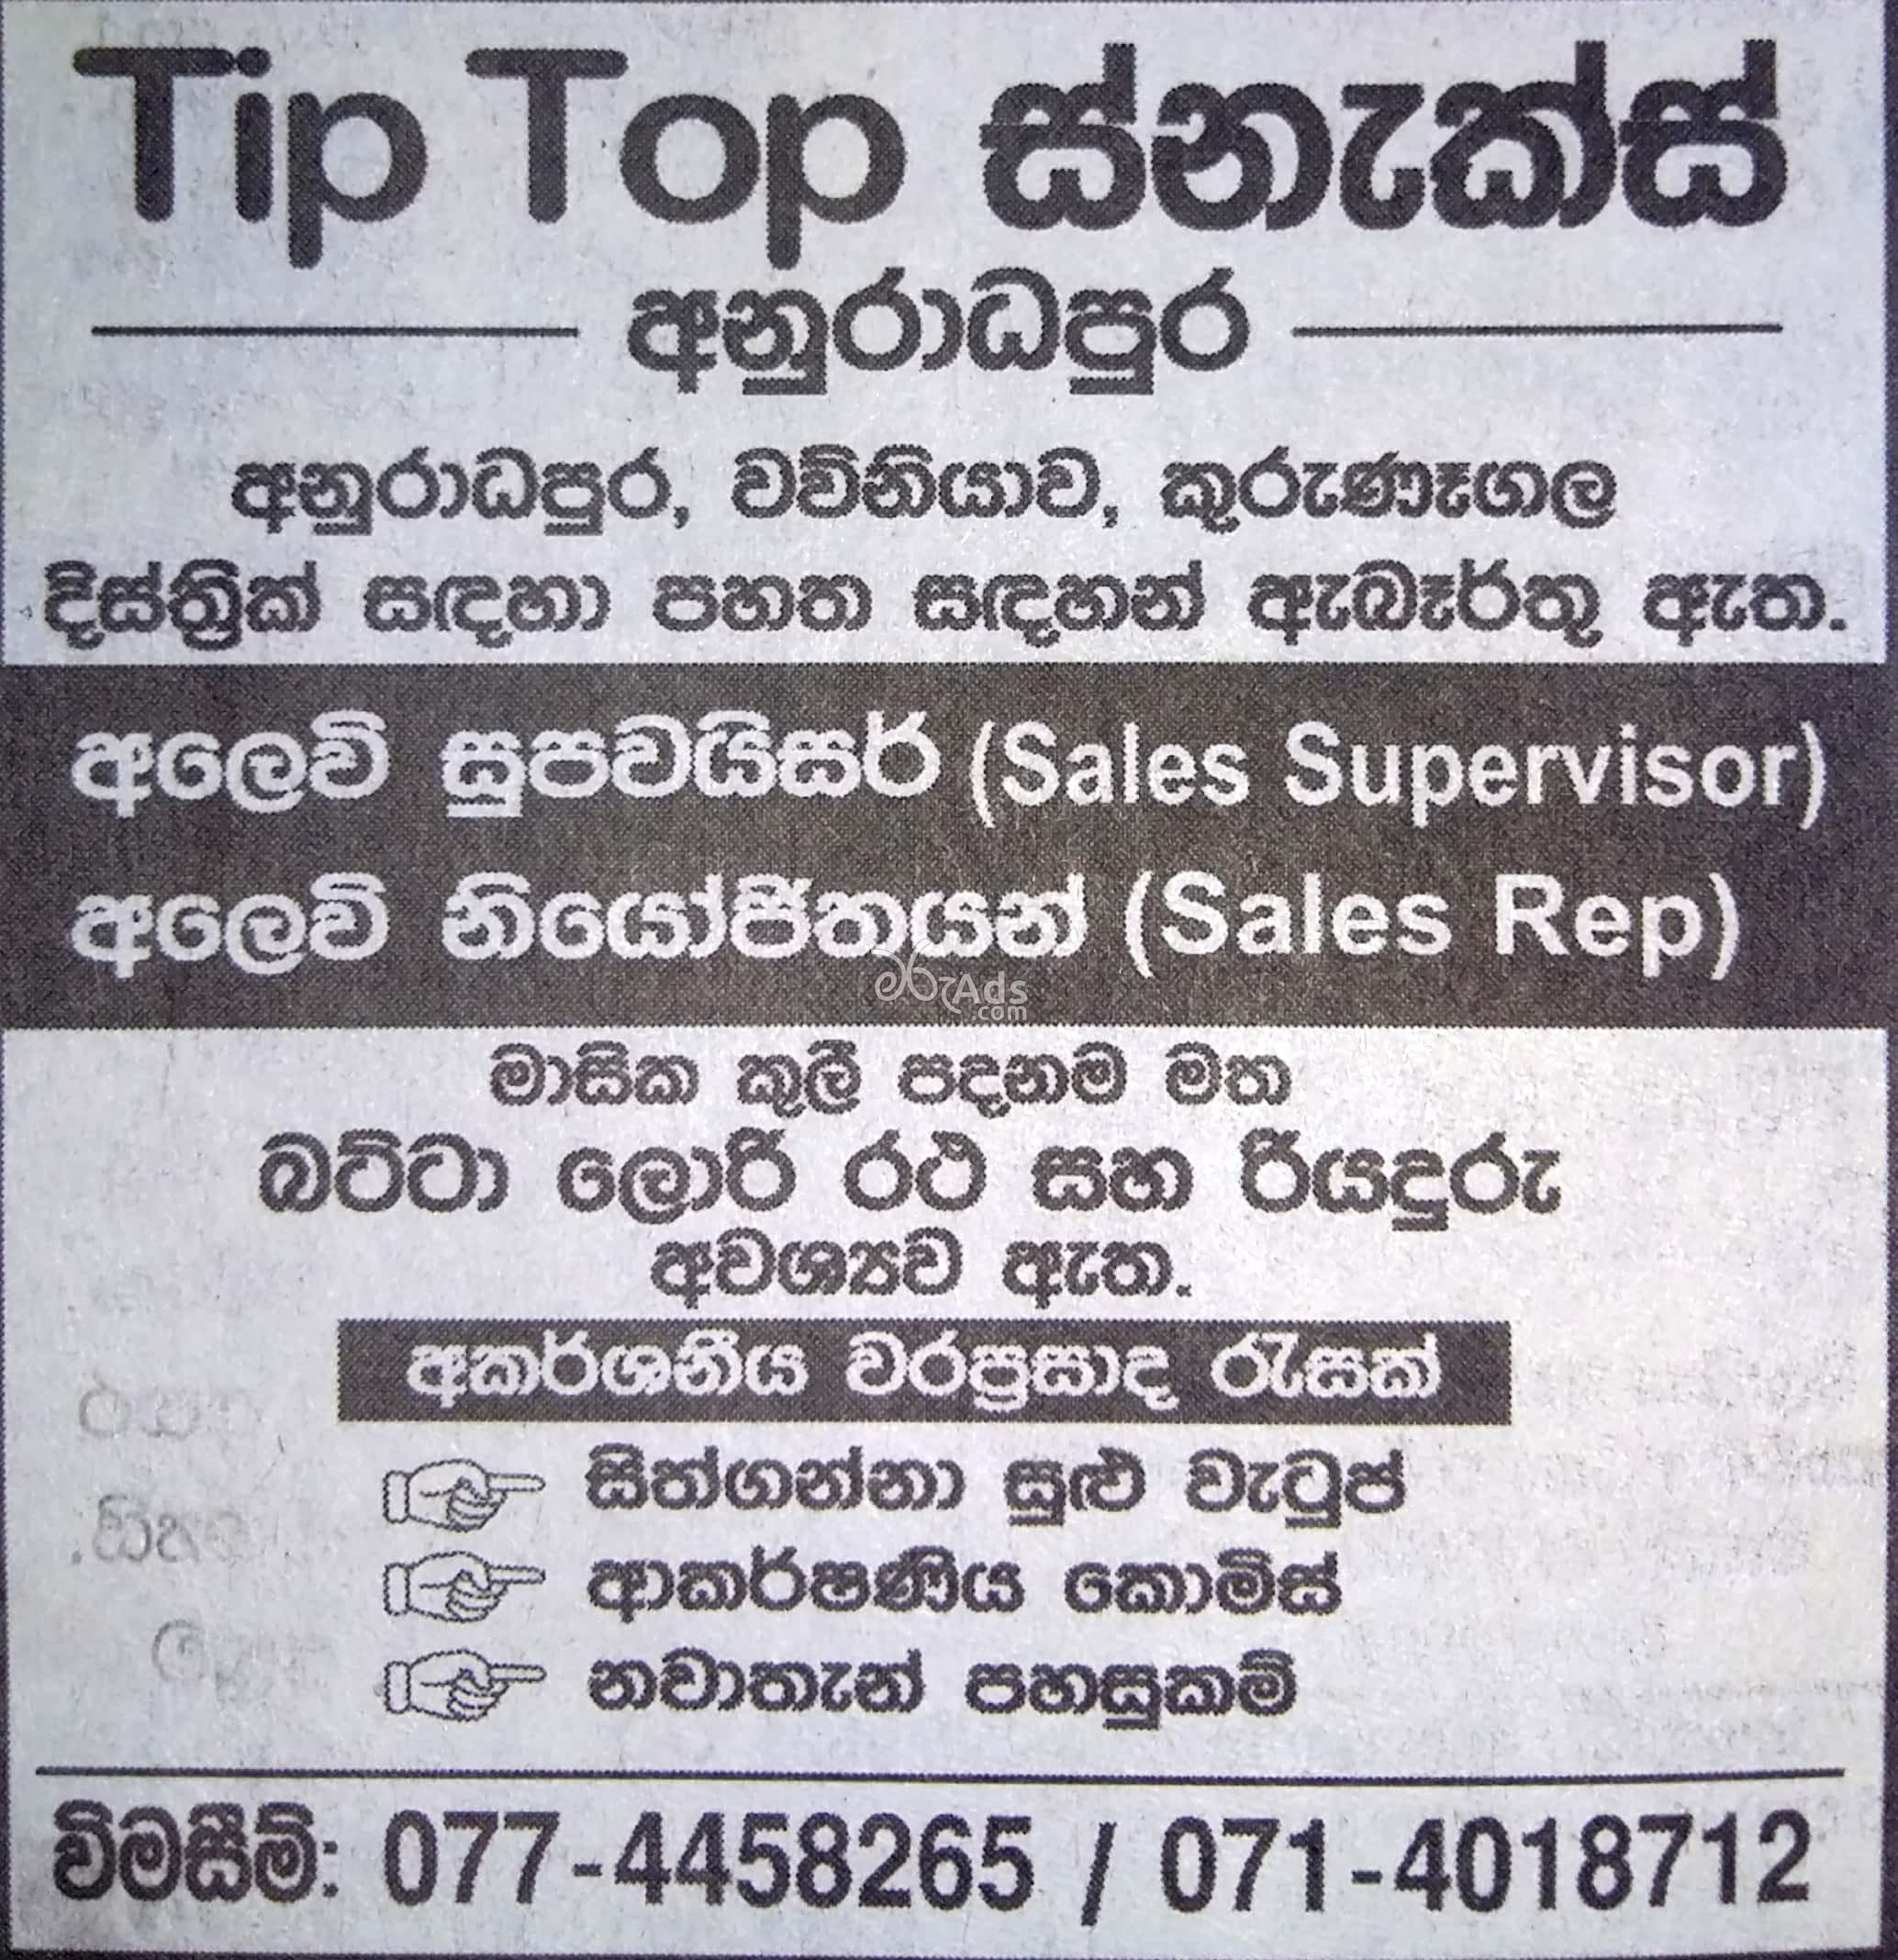 Sales Supervisor / Representative Vacancies at Tip Top Snaks